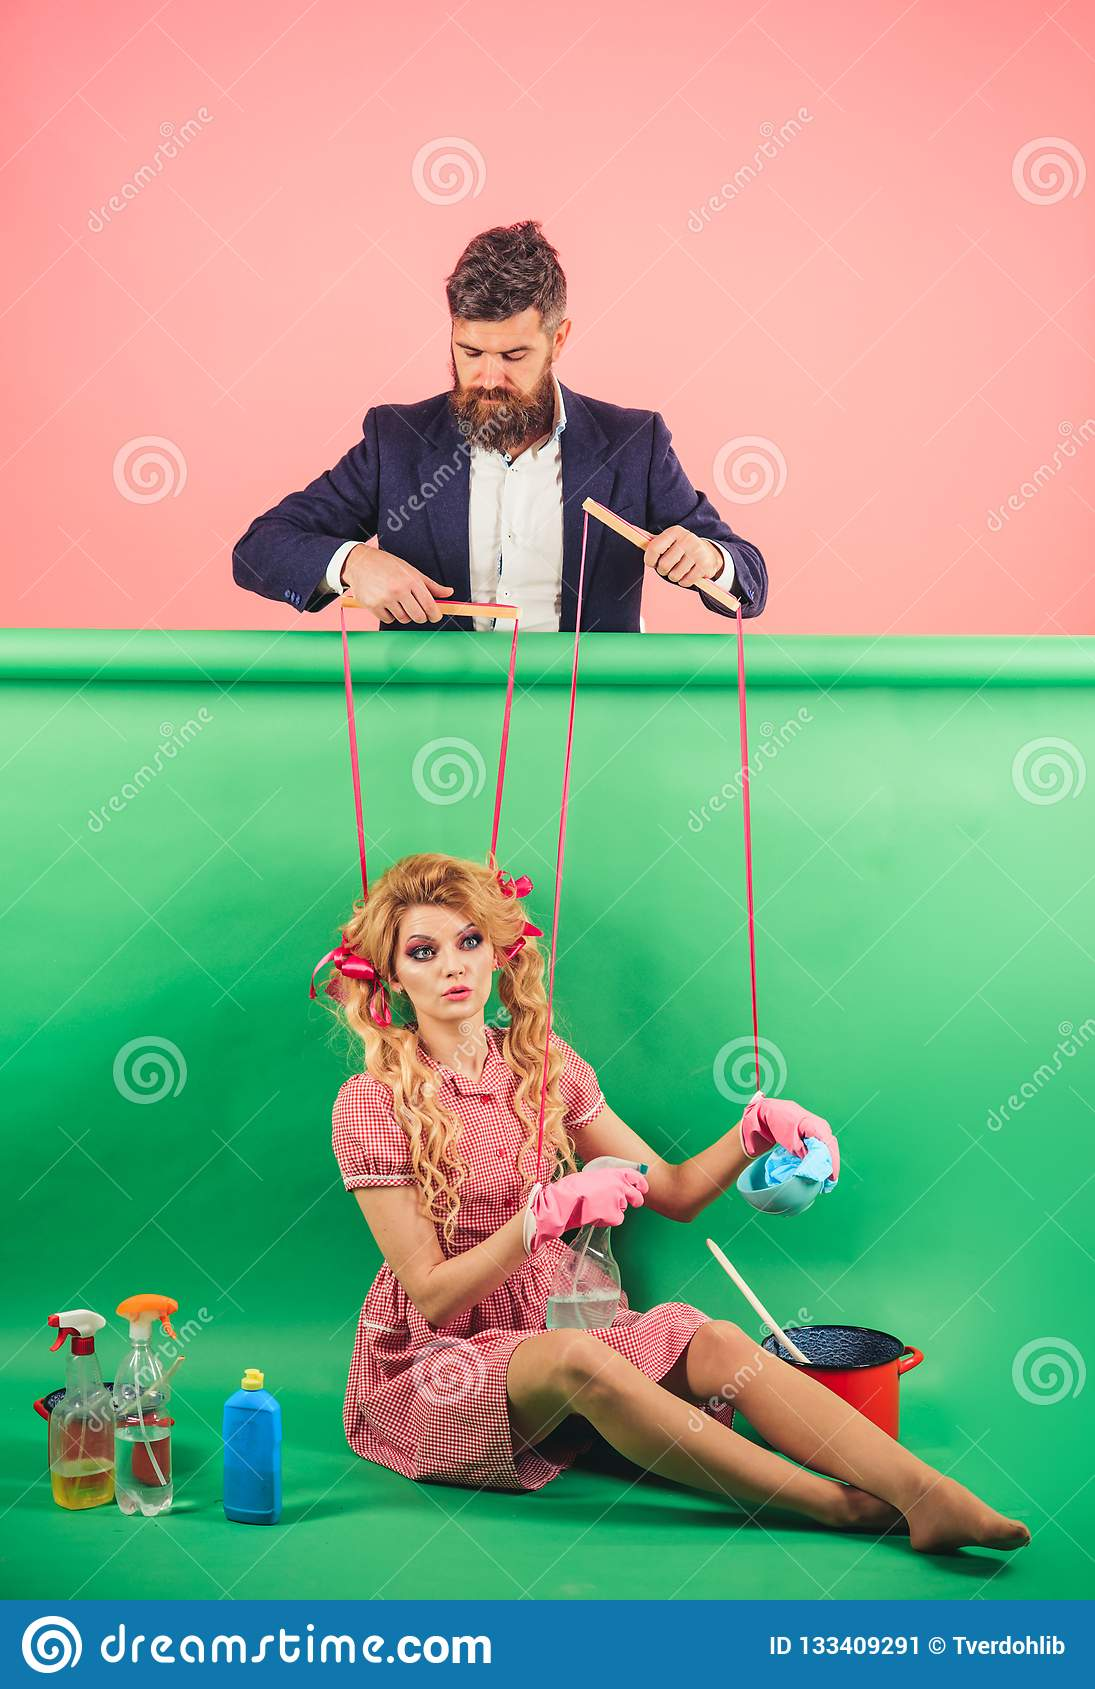 Holidays and doll. dominance and dependence. Housewife. Creative idea. Love. retro girls and master at party. vintage